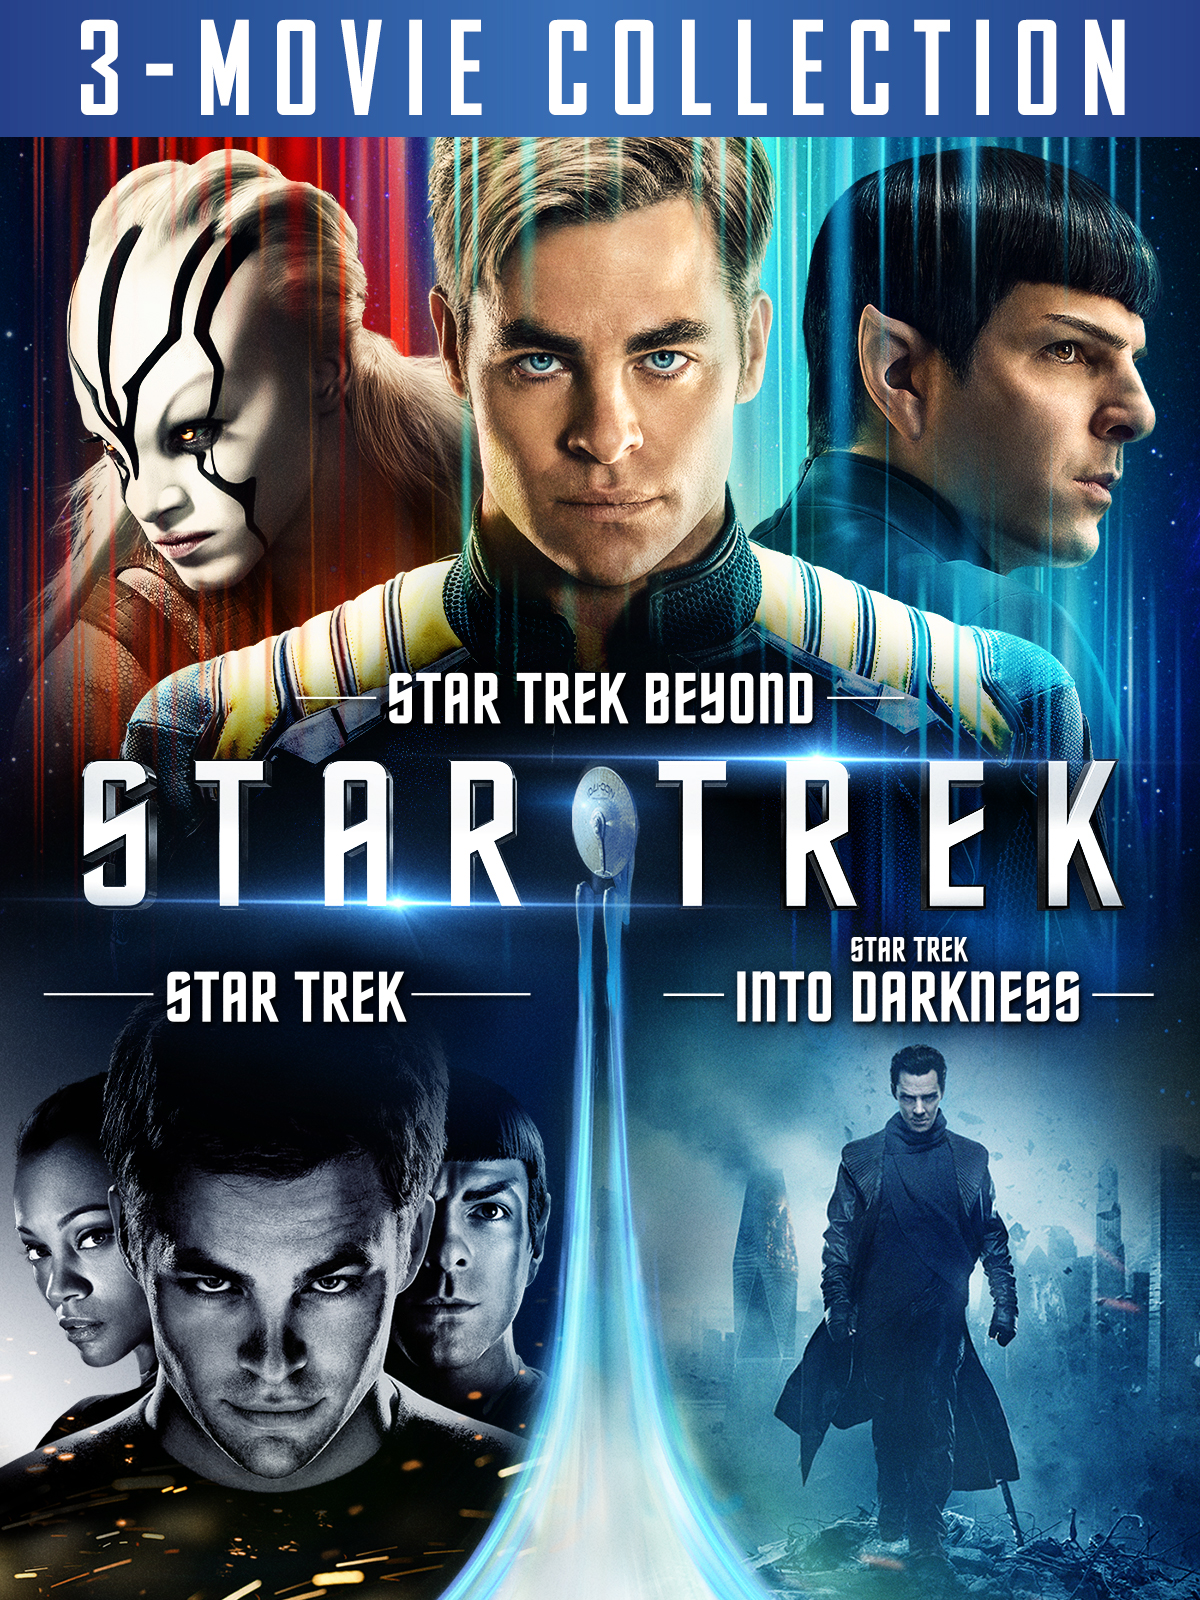 Star Trek 3-Movie Collection (plus bonus content)